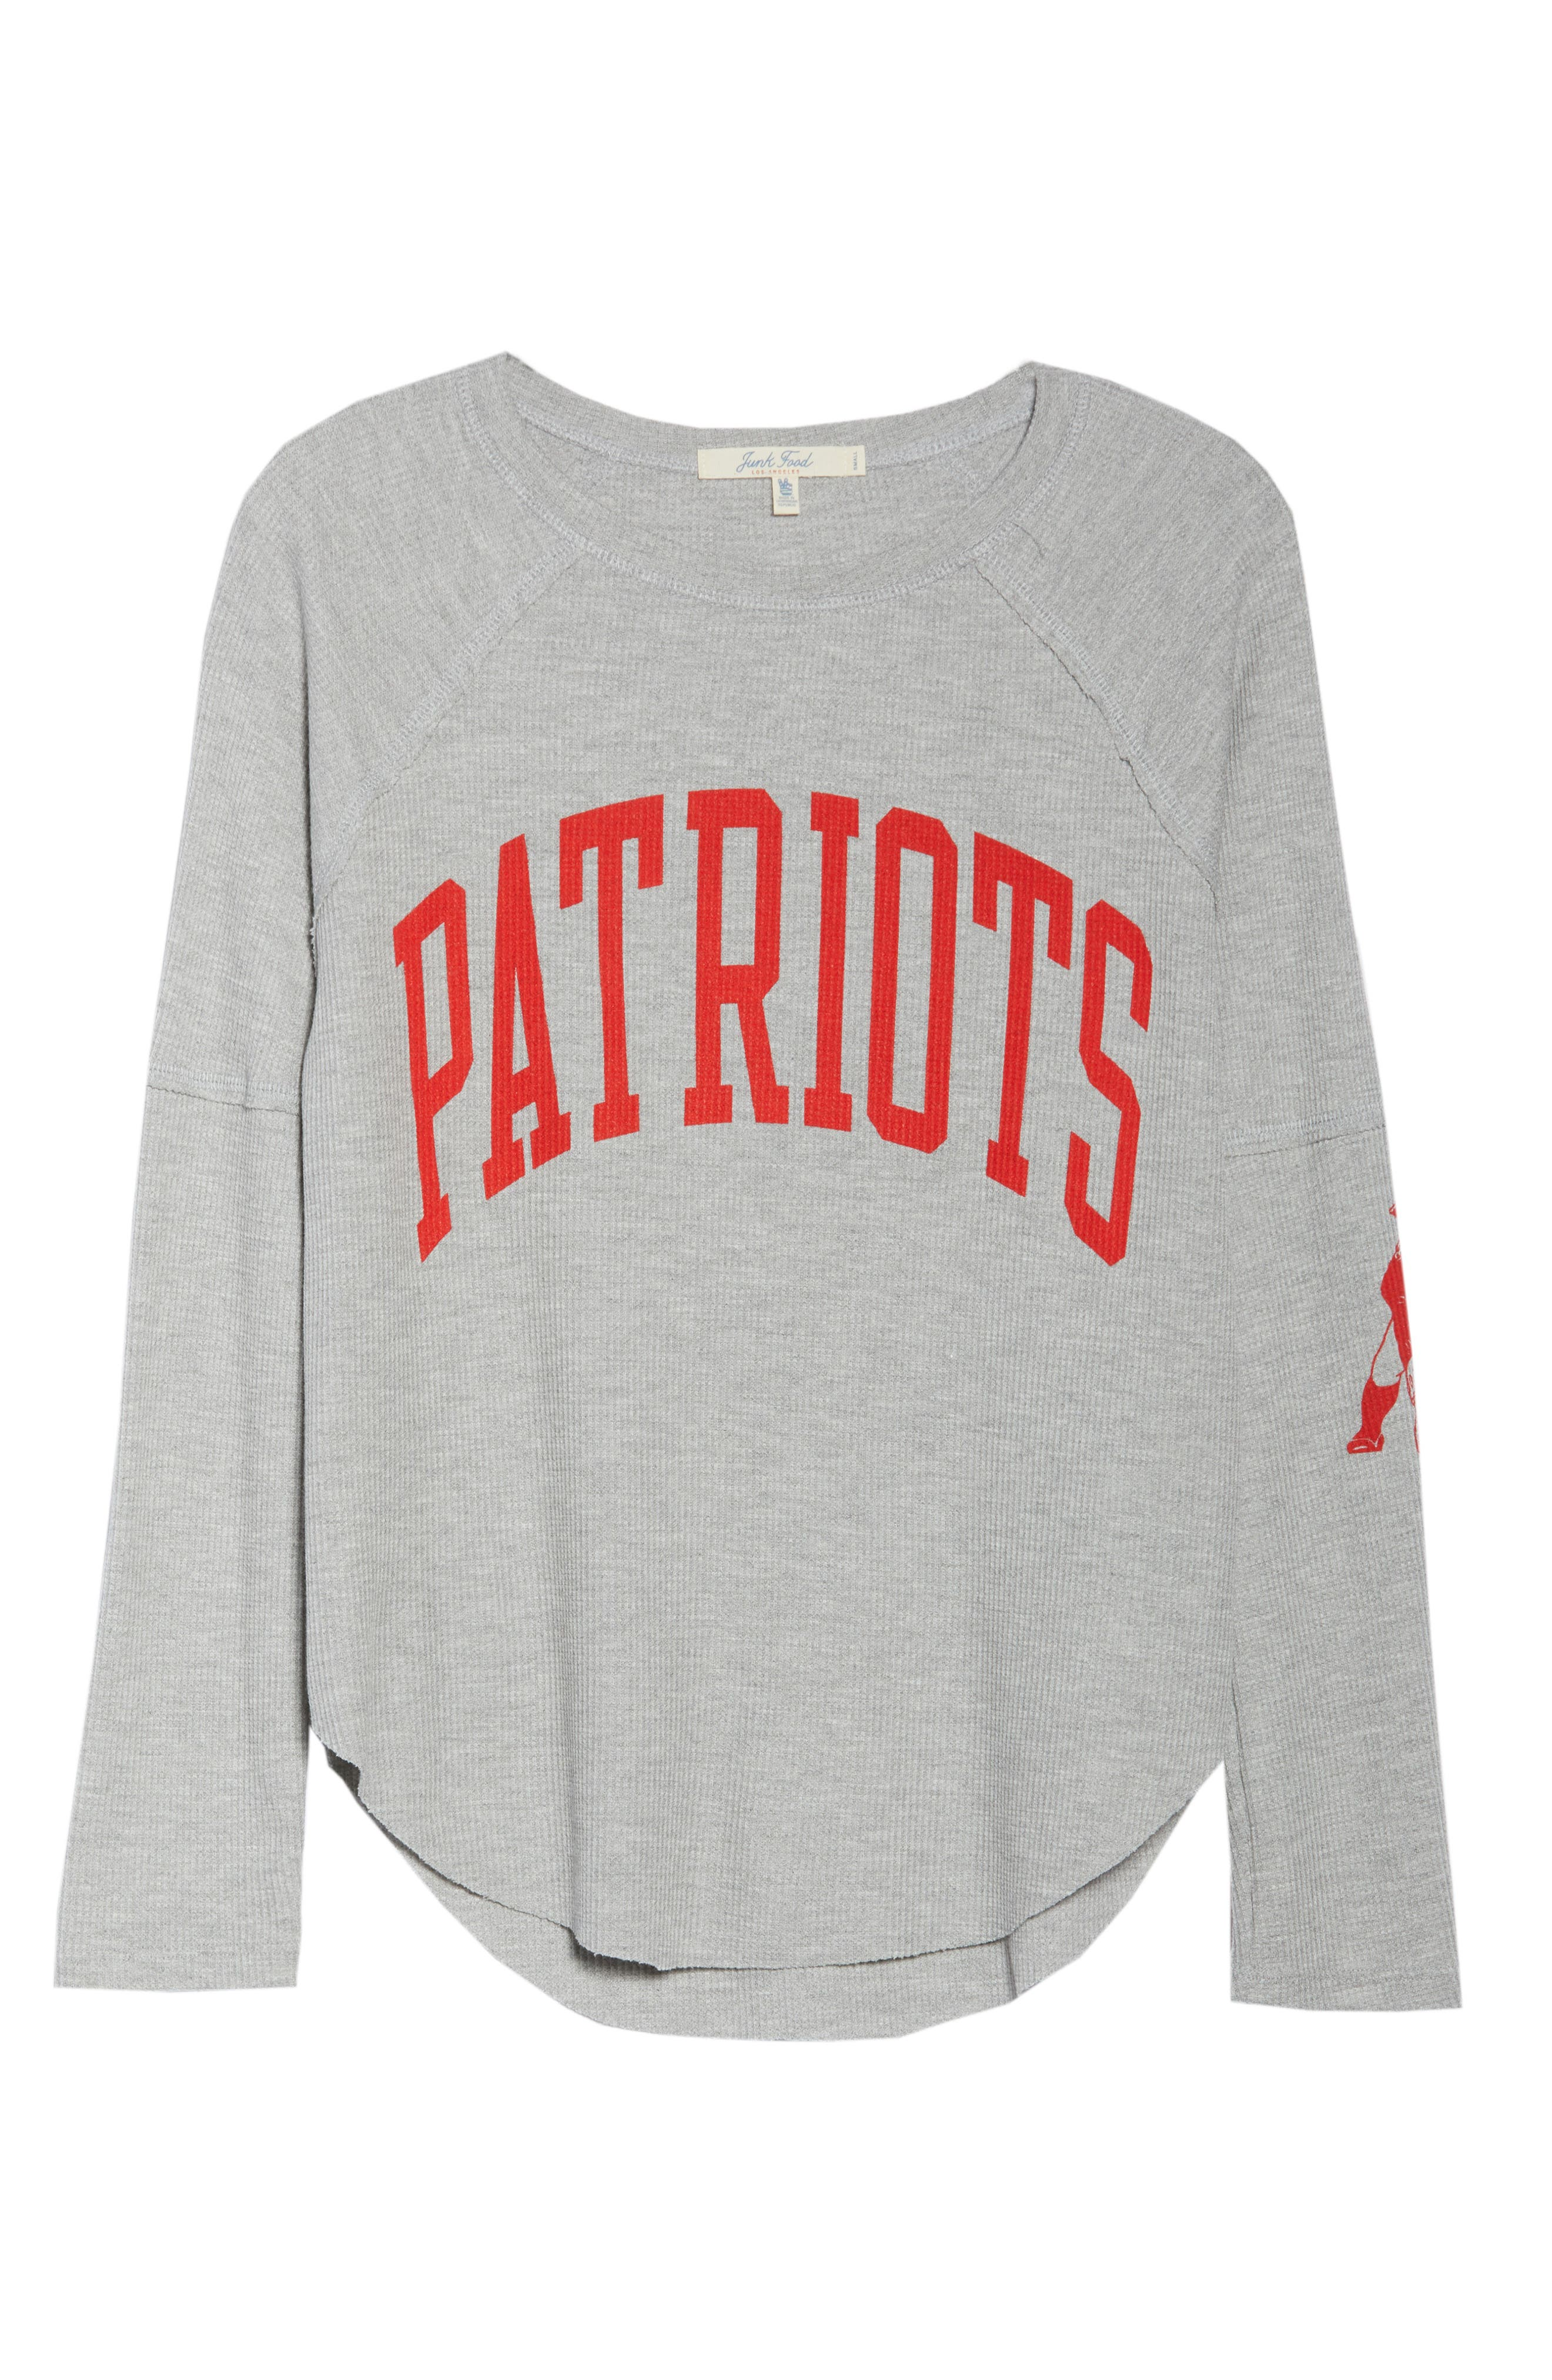 NFL Thermal Tee,                             Alternate thumbnail 6, color,                             PATRIOTS